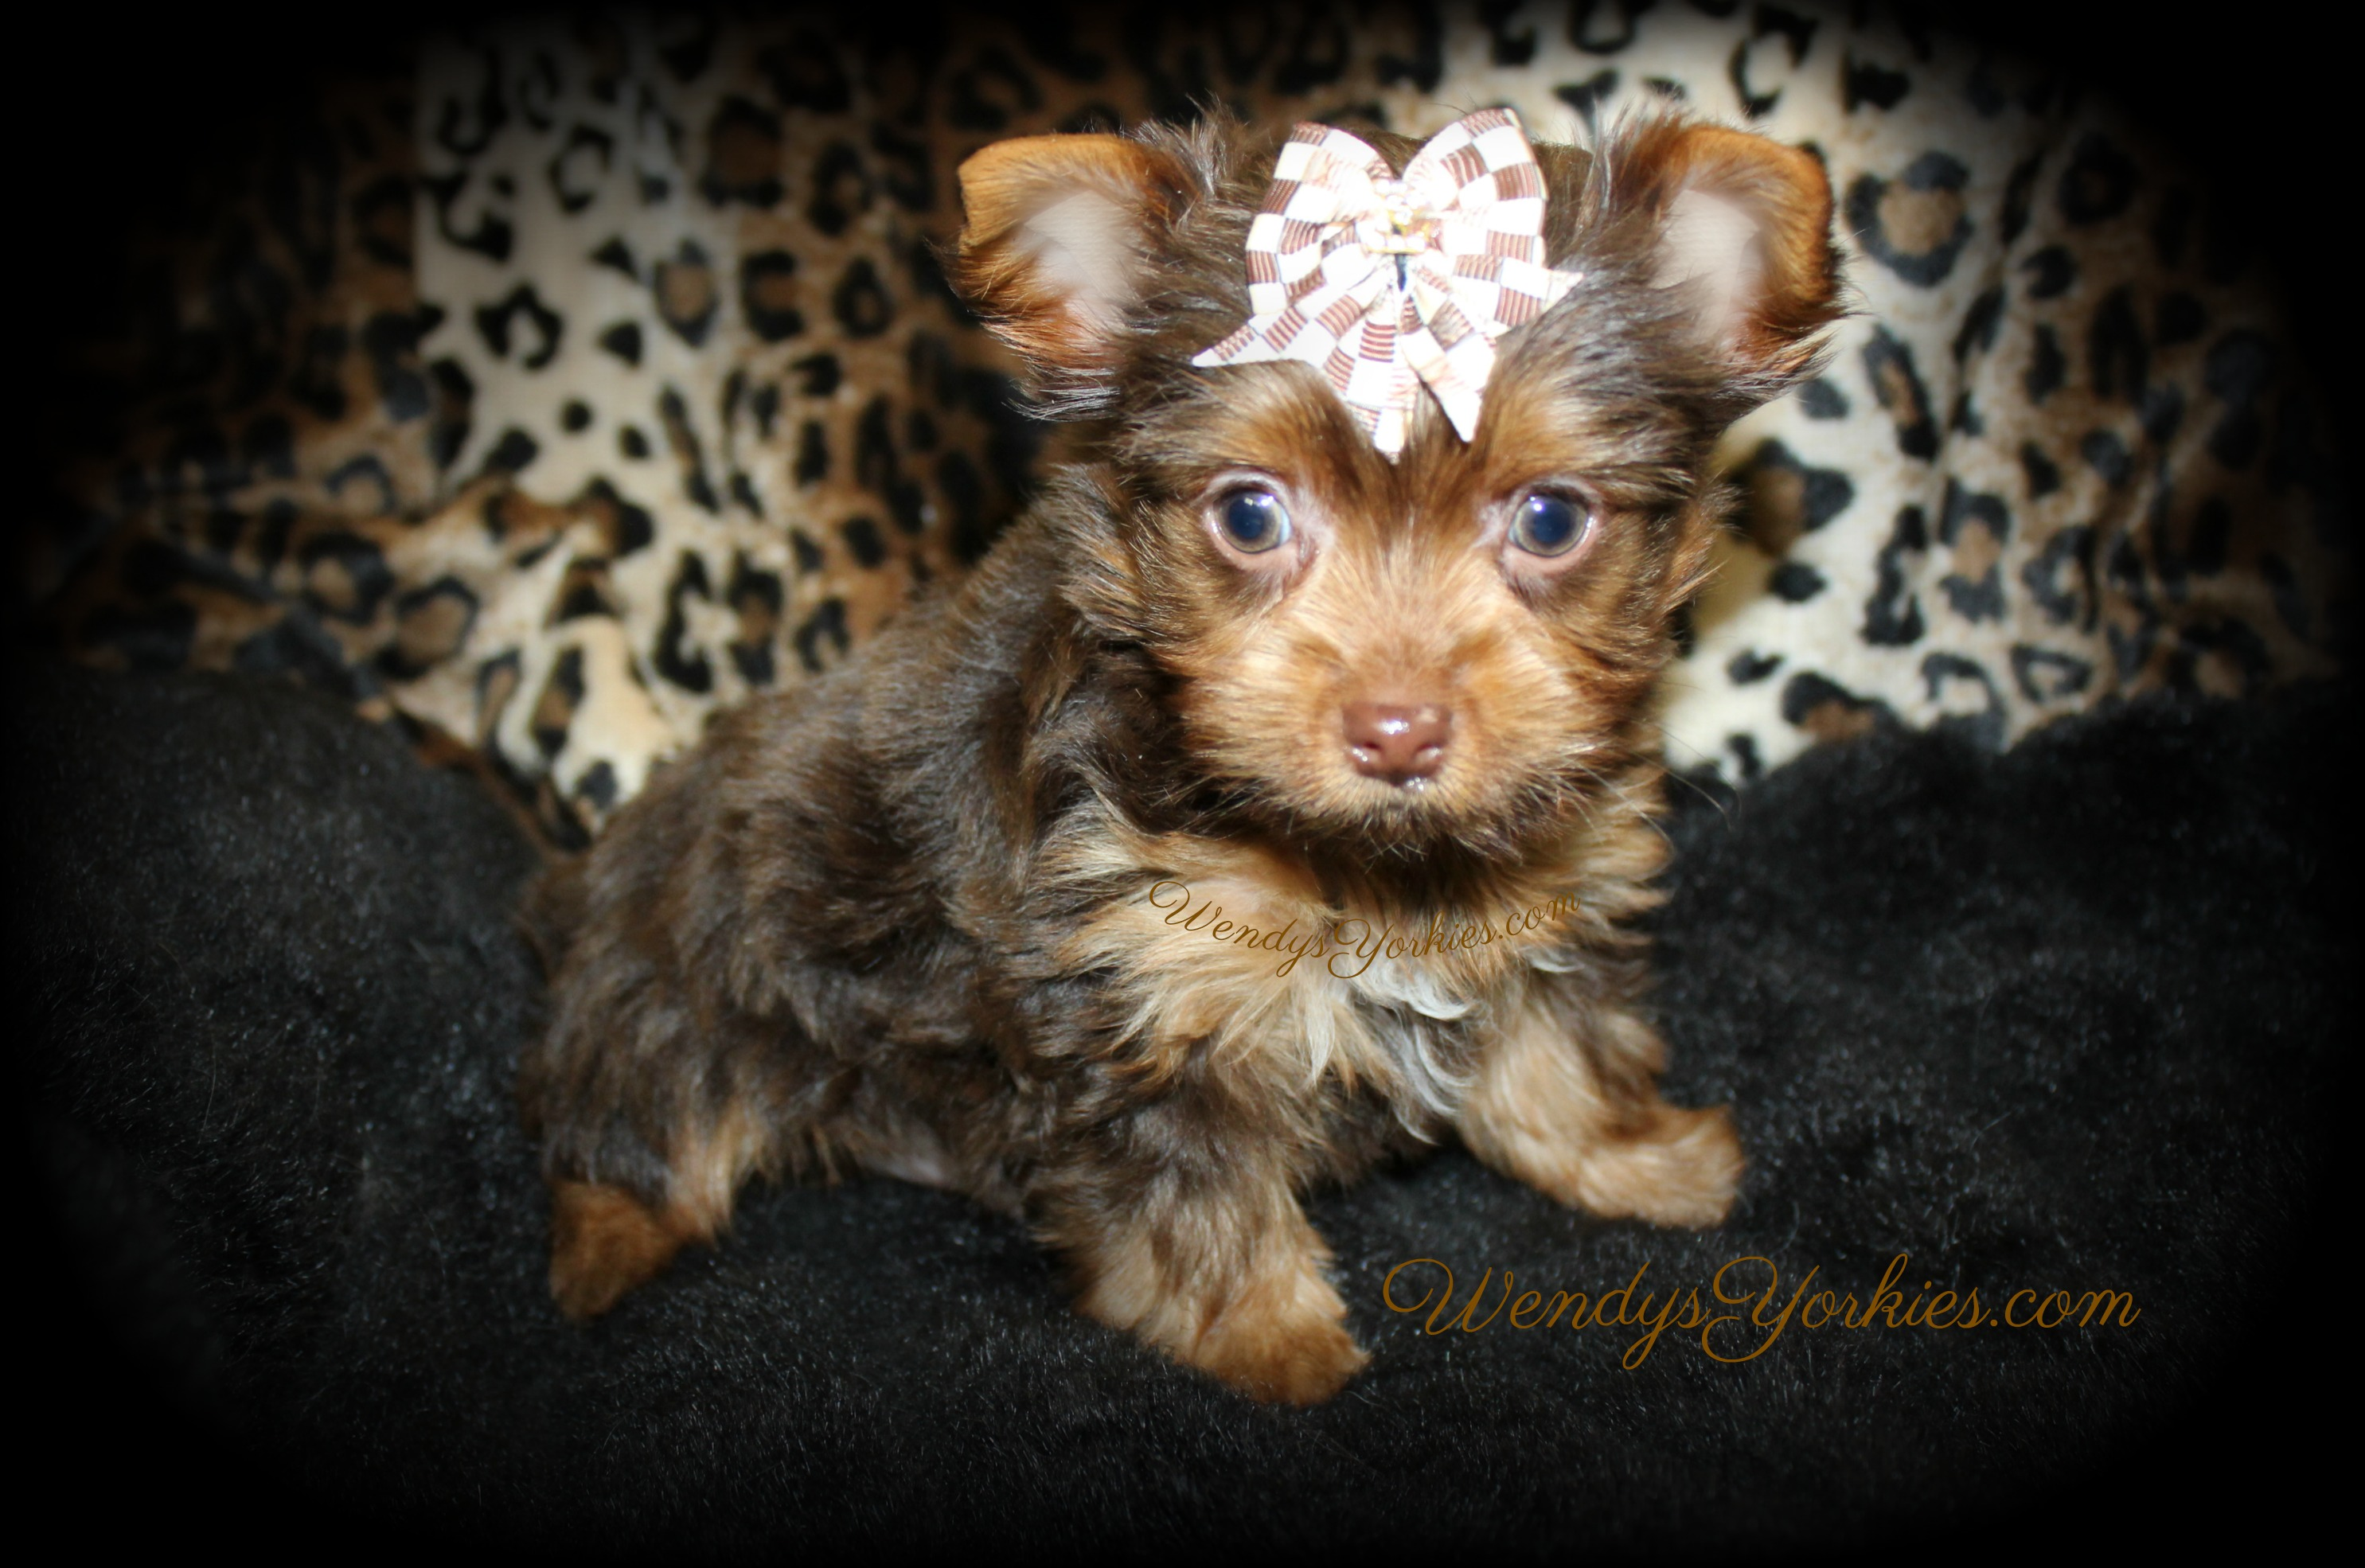 Tiny Chocolate Yorkie puppy for sale in Texas, Dixie cm1, WendysYorkies.com